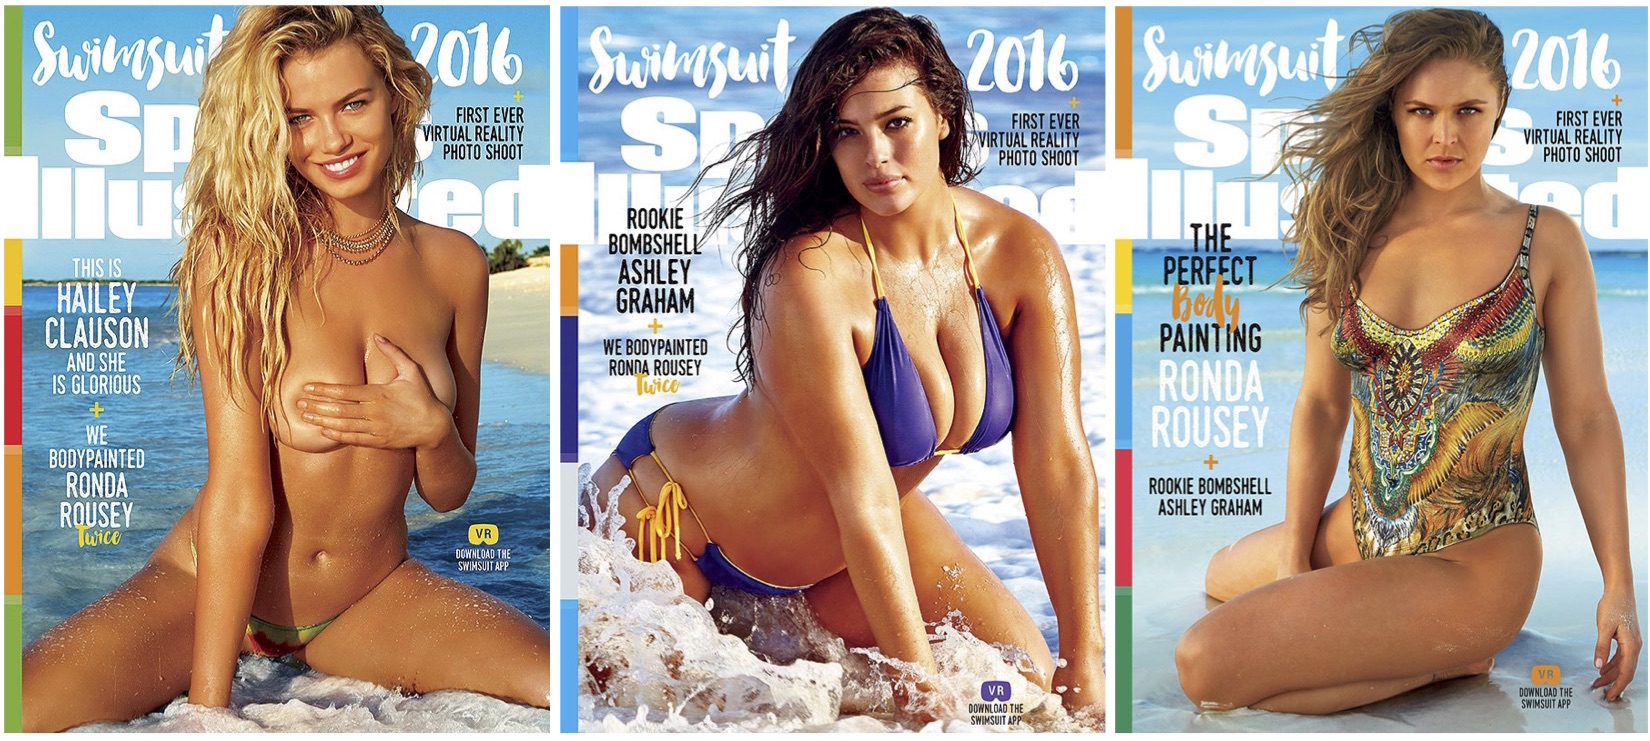 sports-illustrated-2016-3-covers